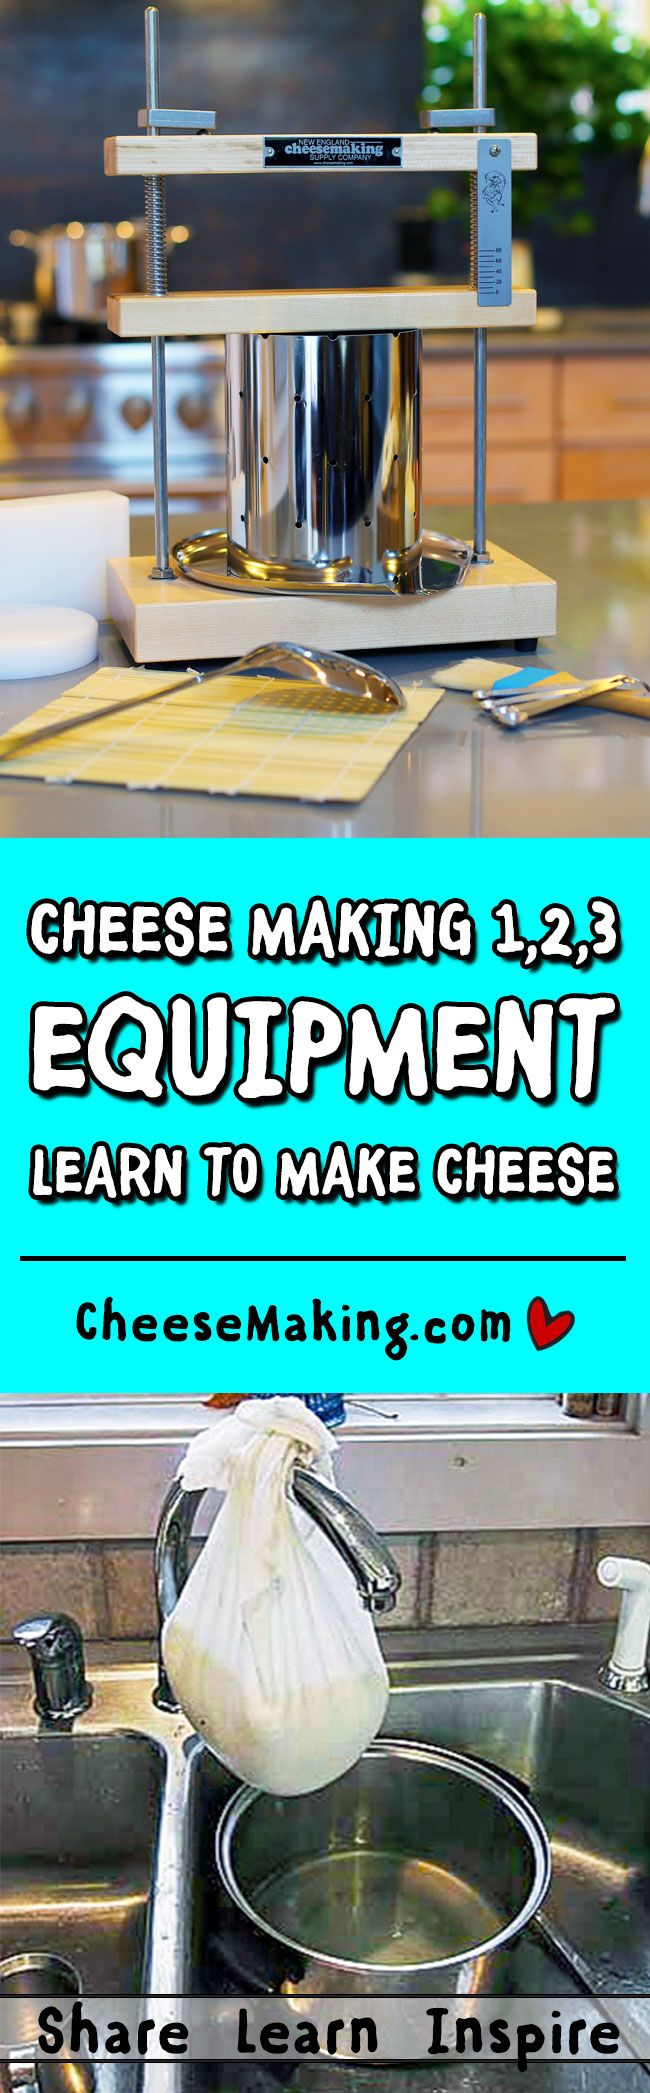 Learn about the equipment needed for making cheese at home and how to care for it. Cheesemaking.com